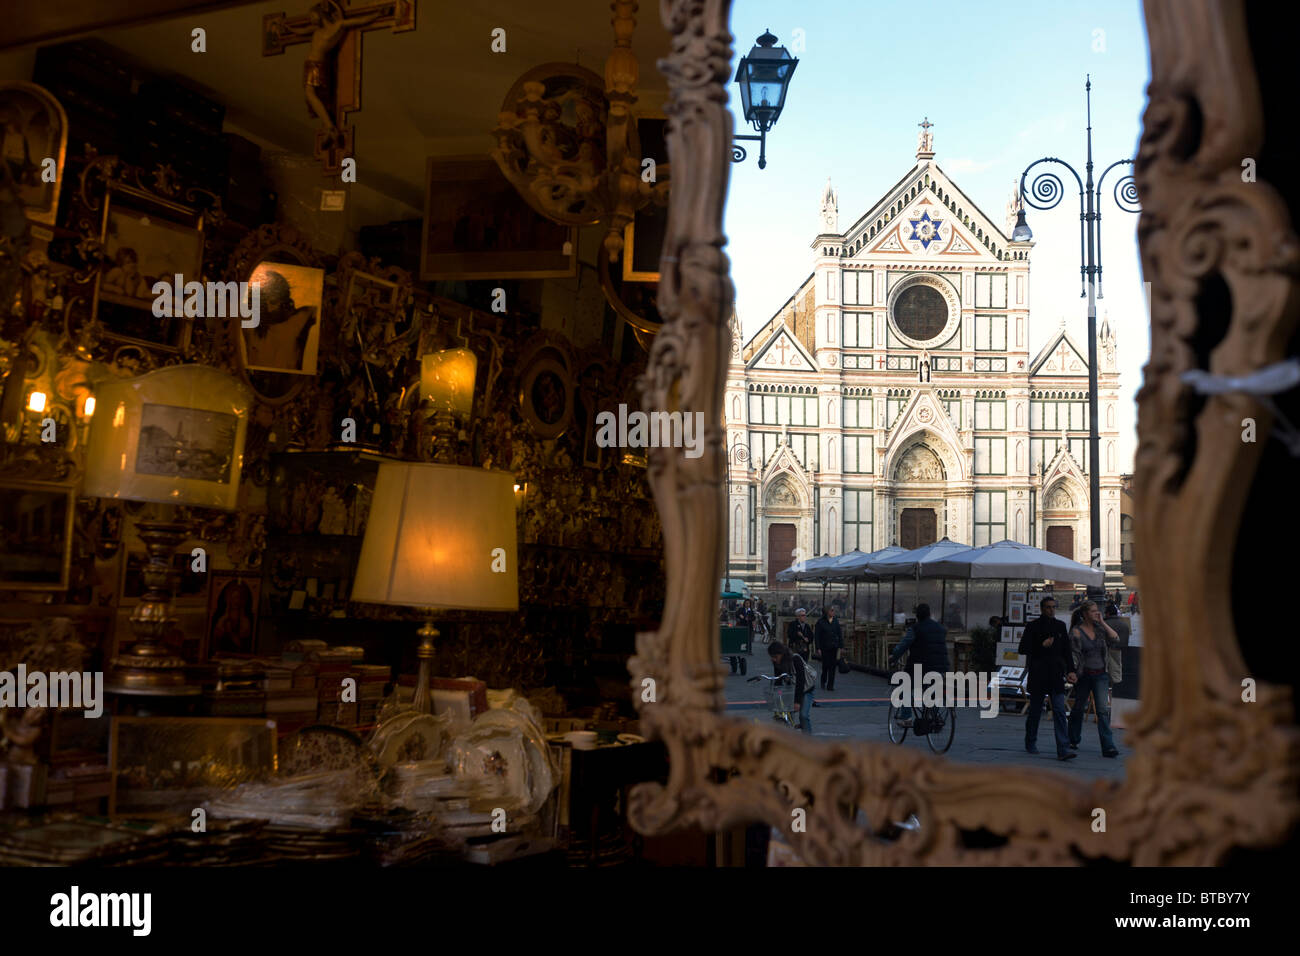 Religious icons and souvenirs with Santa Croce church reflected in mirror at end of Piazza. - Stock Image